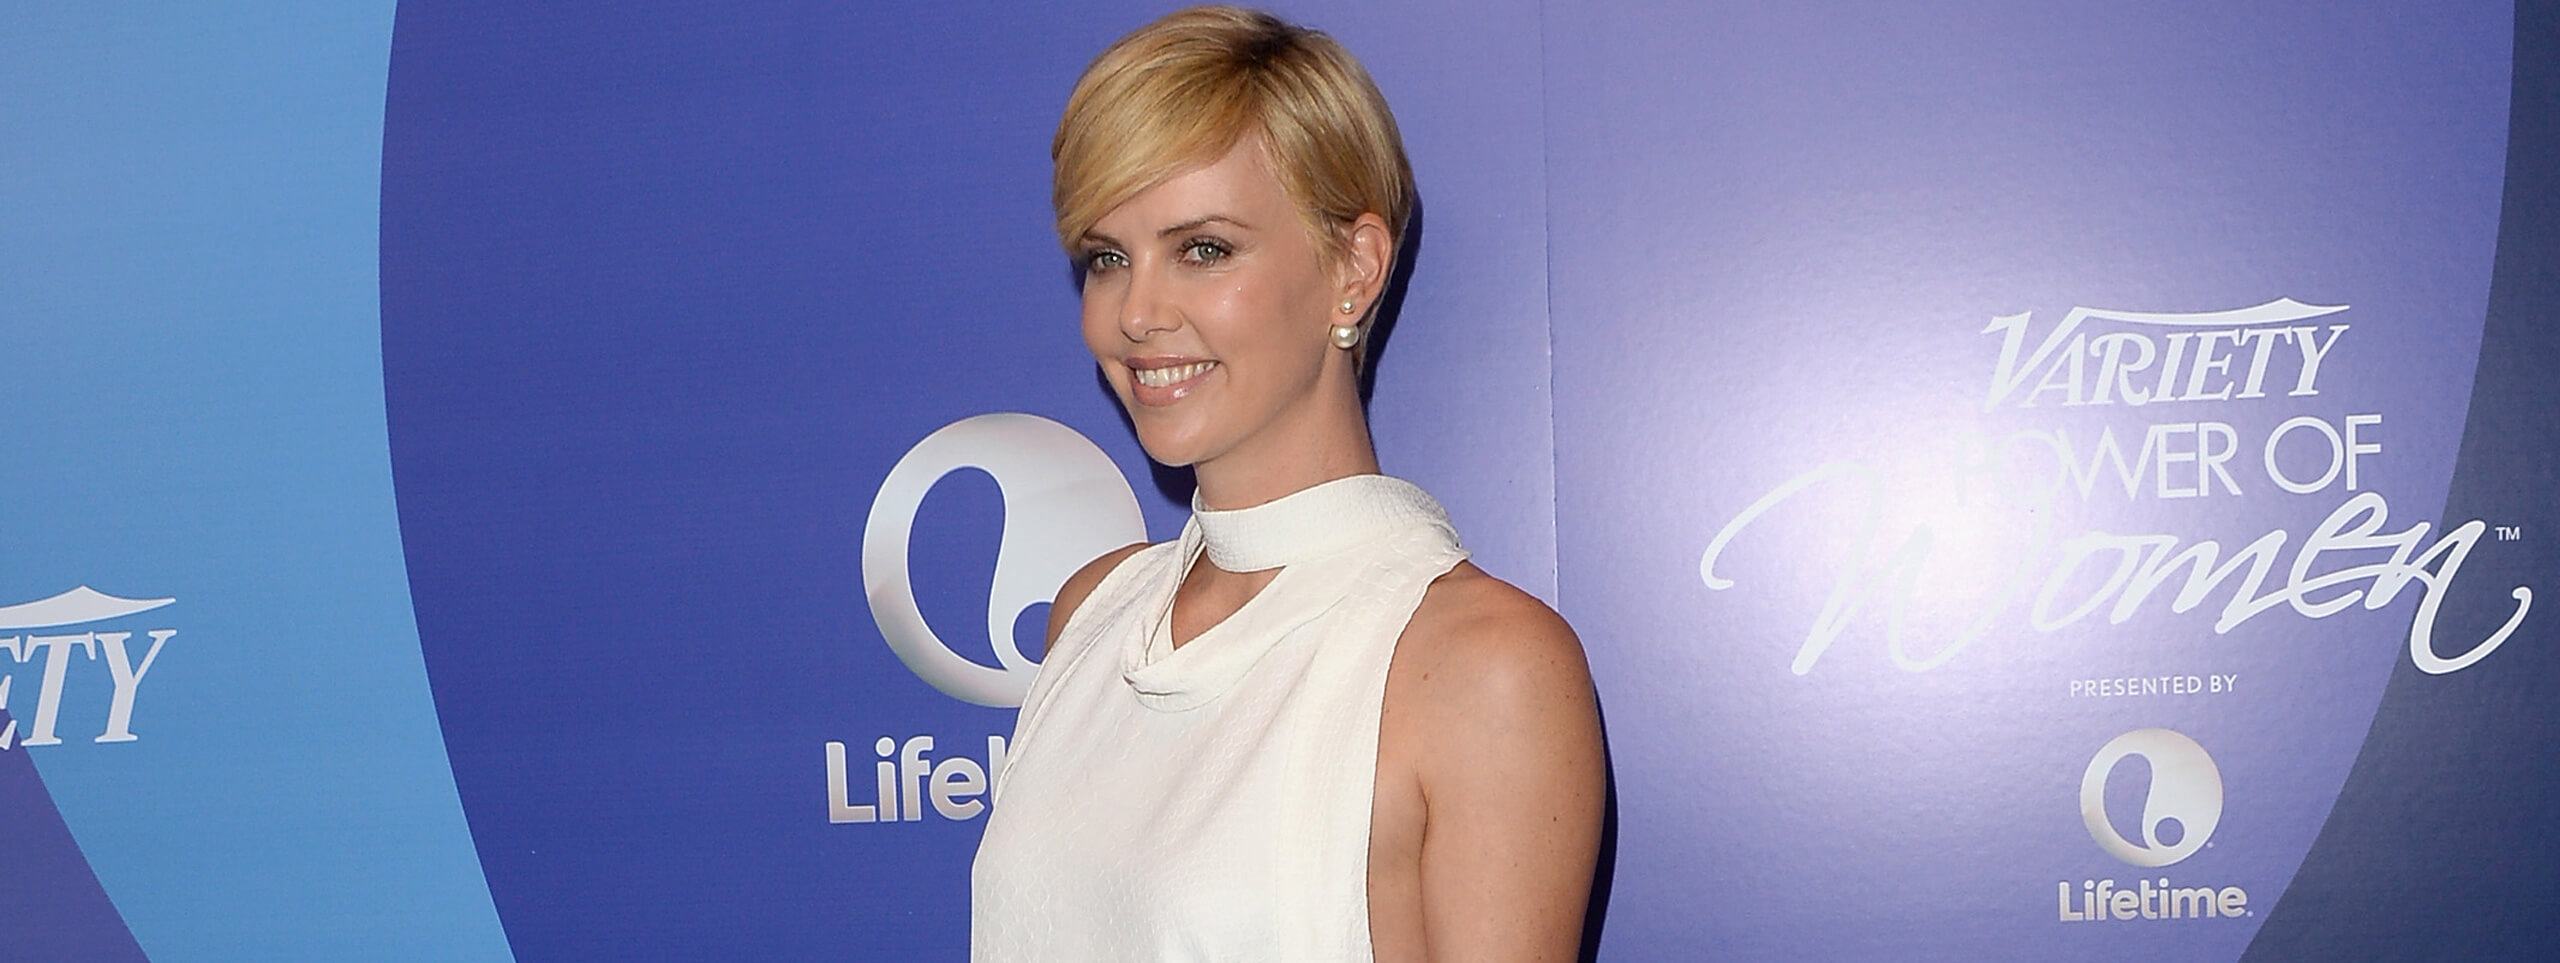 Feminine short hairstyle with blonde hair